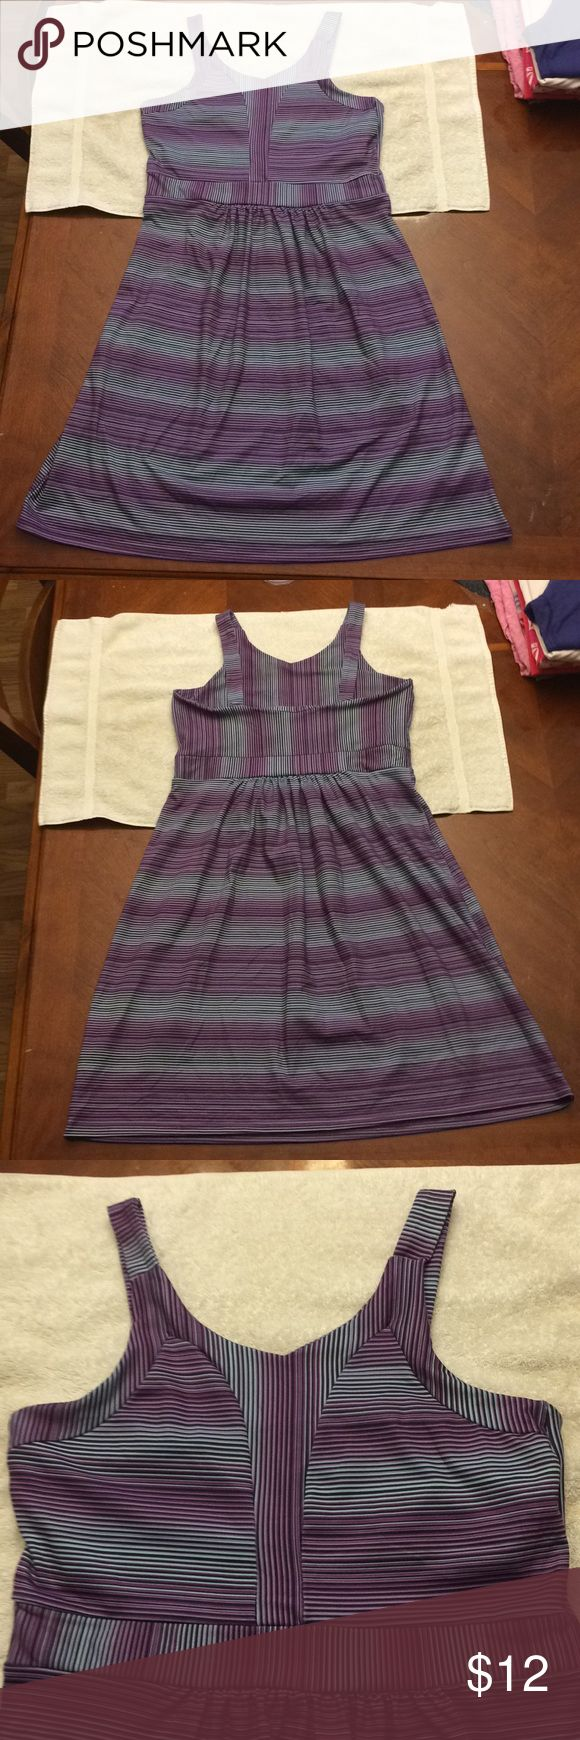 Tehama athletic dress Challenging to photograph, this striped tank style athletic Dress features horizontal stripes in purple, black, and blue. Top has a built-in bra, from top to bottom measures 34 inches. Material is 90% polyester, 10% spandex. EUC, no snags or stains. TEHAMA Dresses Midi